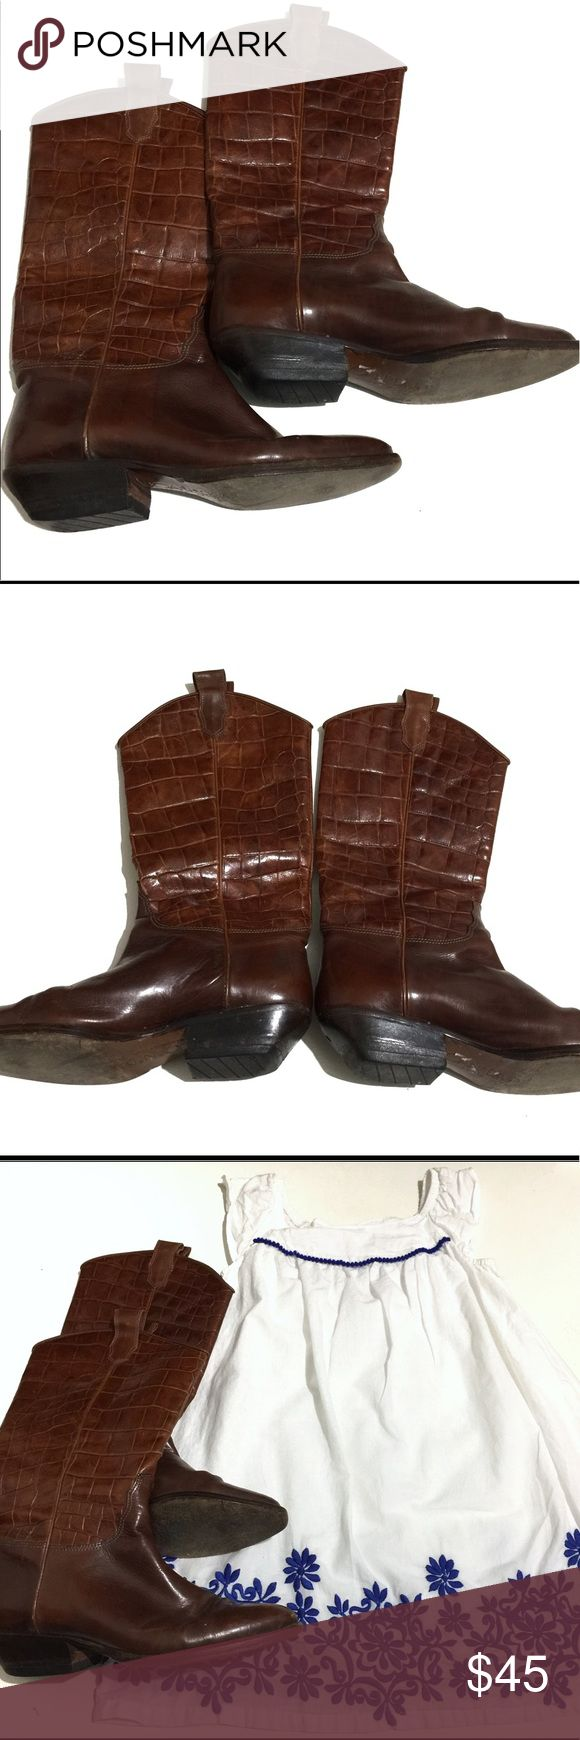 Circa Joan & David Italian Leather Alligator Boots Handmade Italian leather couture western boots for the young cowgirl/cowboy at heart. Pointed ties with blocked heels. Wear on the bottom but otherwise in perfect condition. Joan & David Shoes Boots